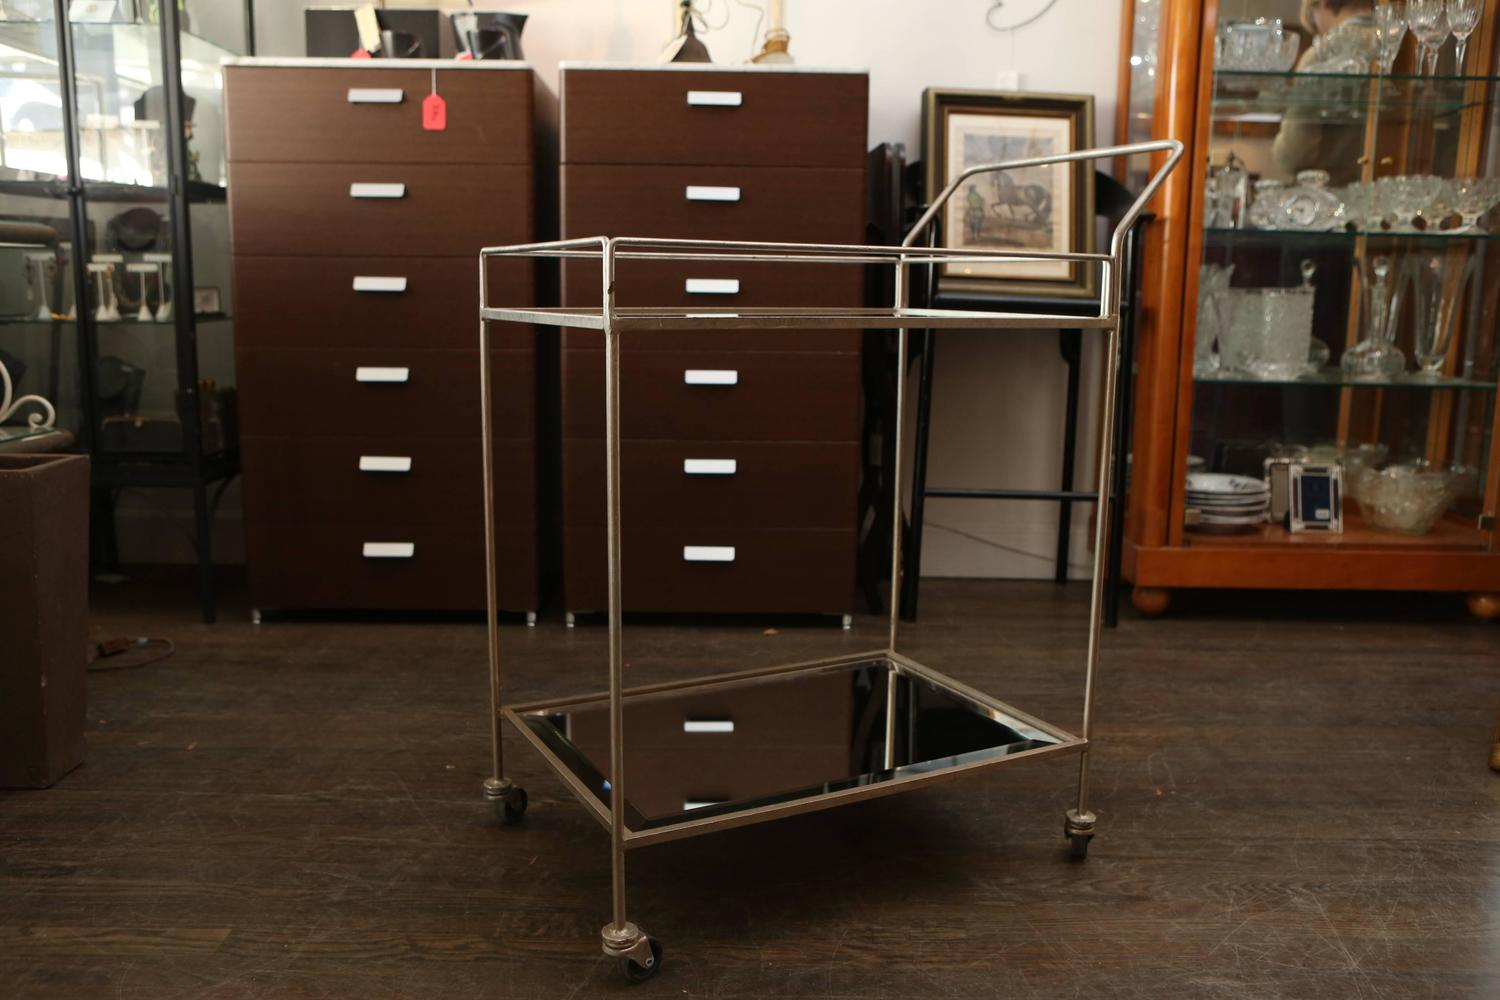 Mid Century Mirrored Bar Cart For Sale at 1stdibs : 4W7A1708z from www.1stdibs.com size 1500 x 1000 jpeg 123kB